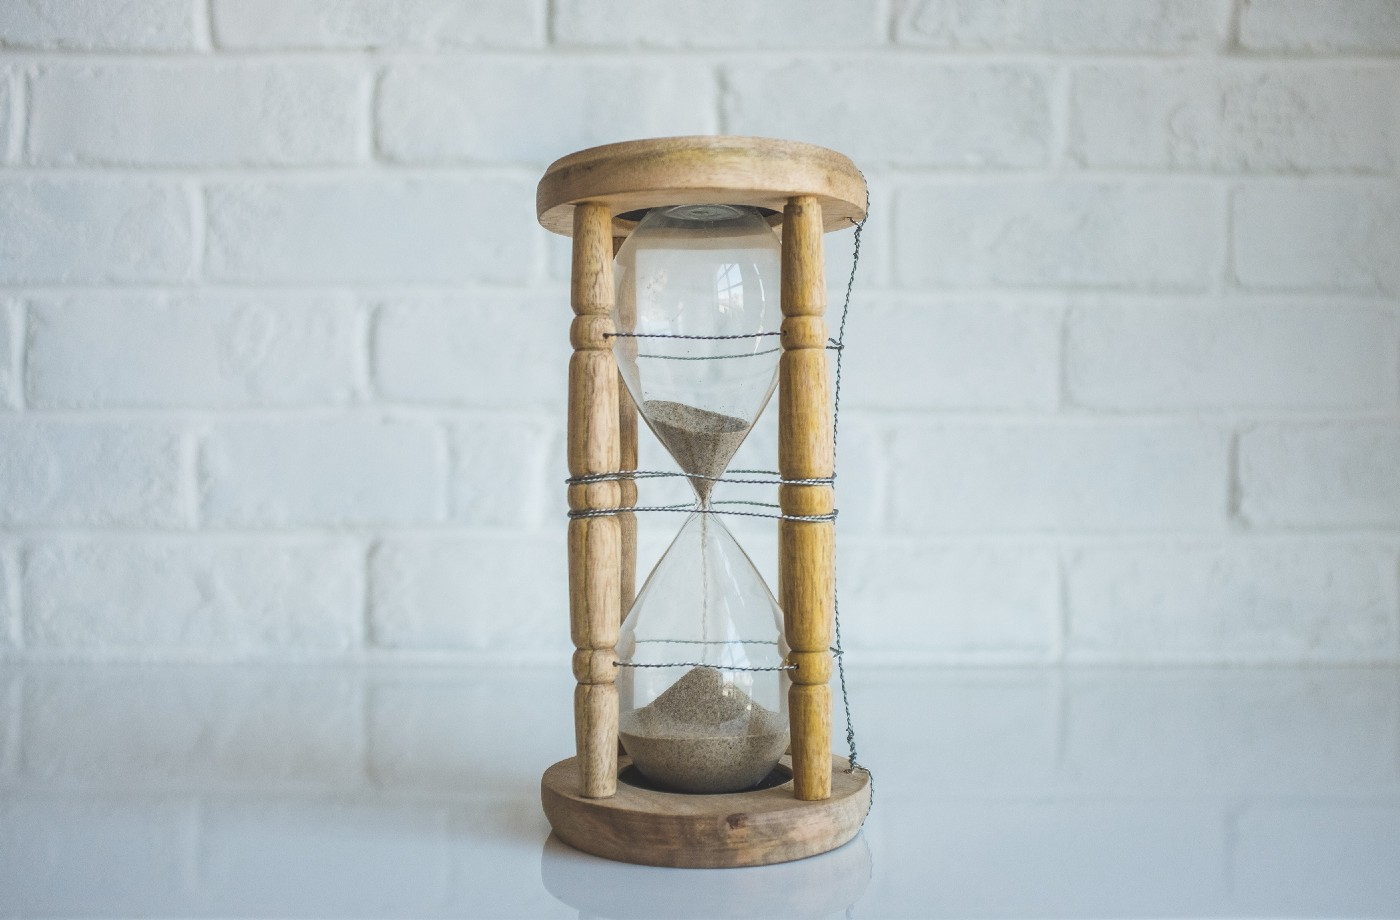 Wooden hourglass on a counter against a white brick wall